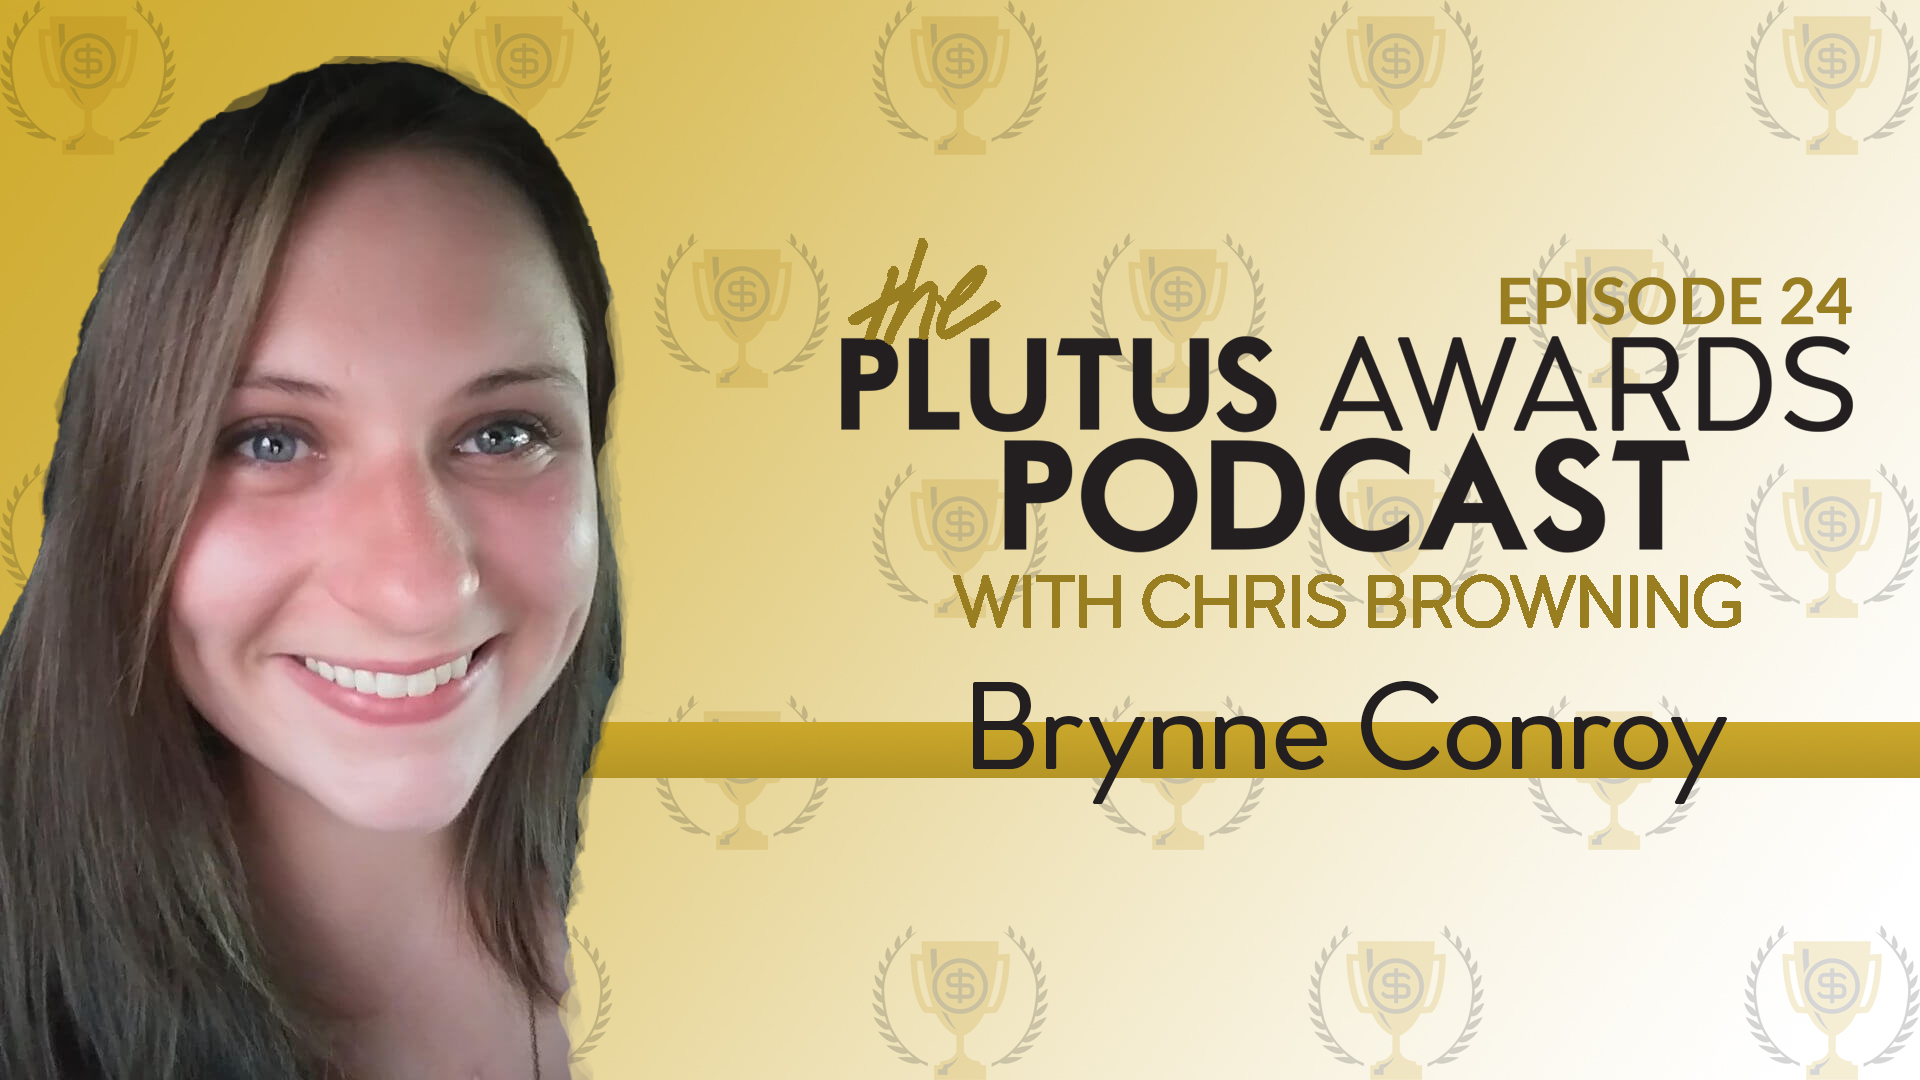 Brynne Conroy Plutus Awards Podcast Featured Image